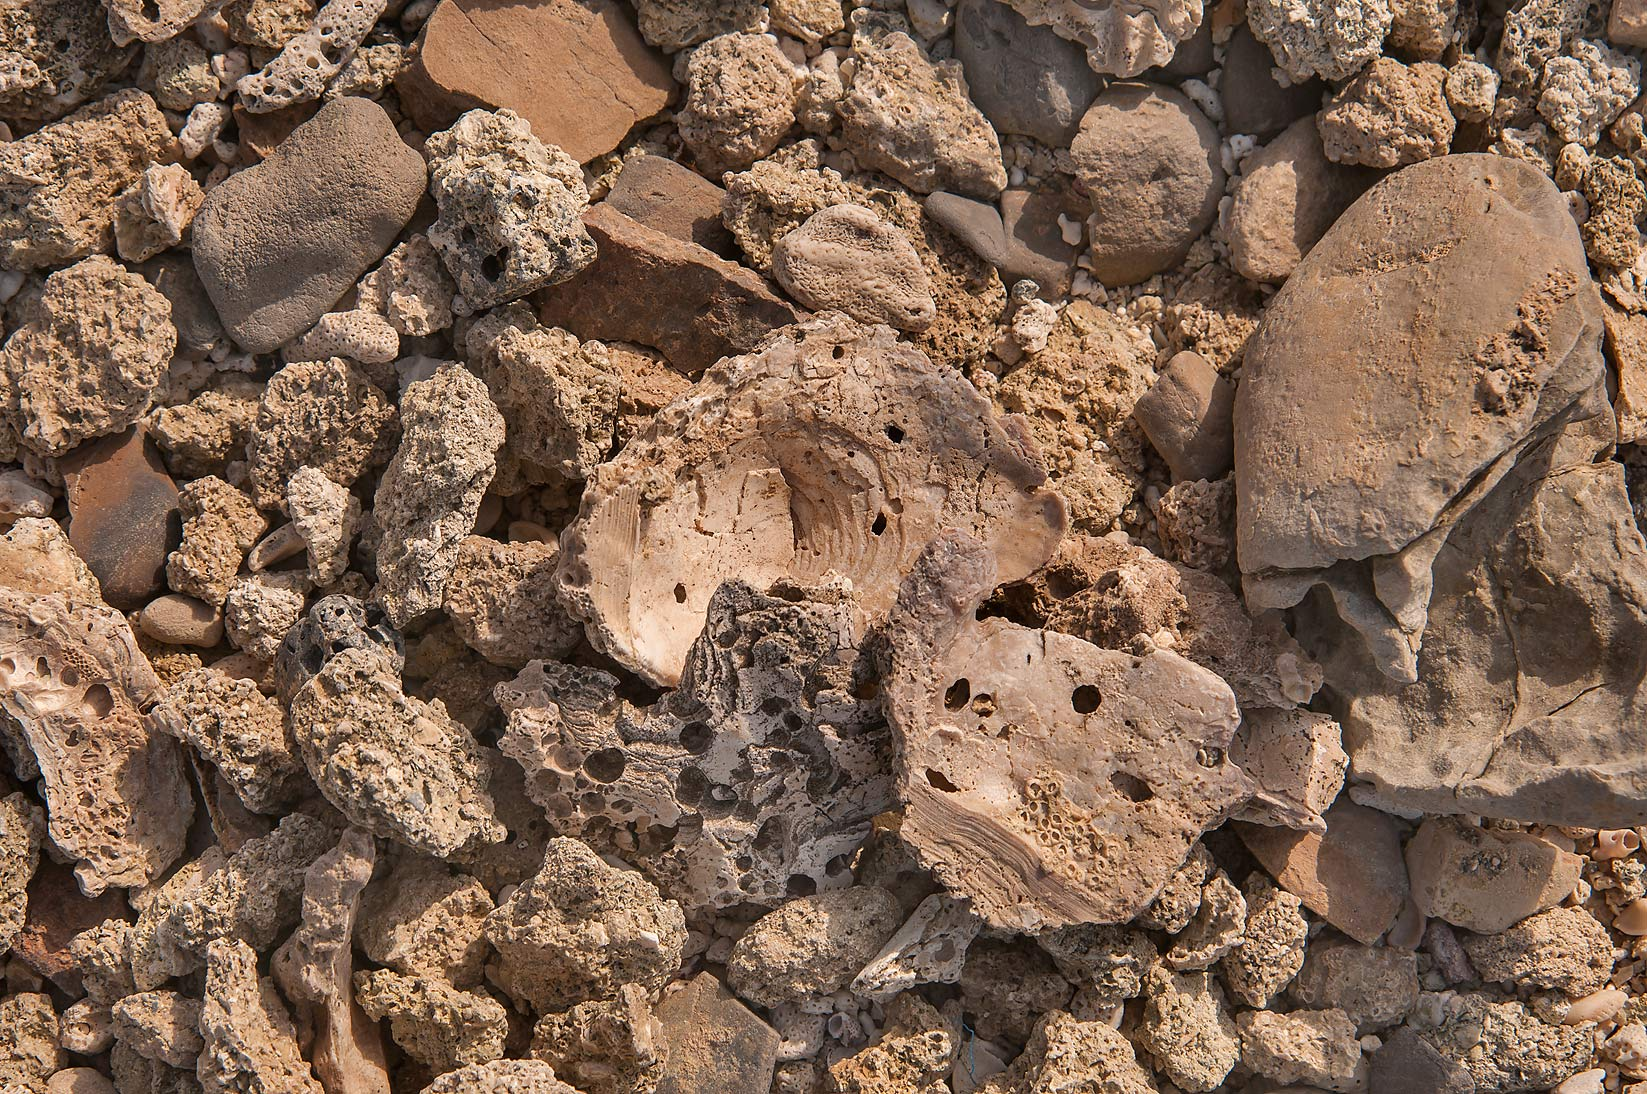 Fossilized oyster shells and dead corals on a...Haloul Island (Jazirat Halul). Qatar